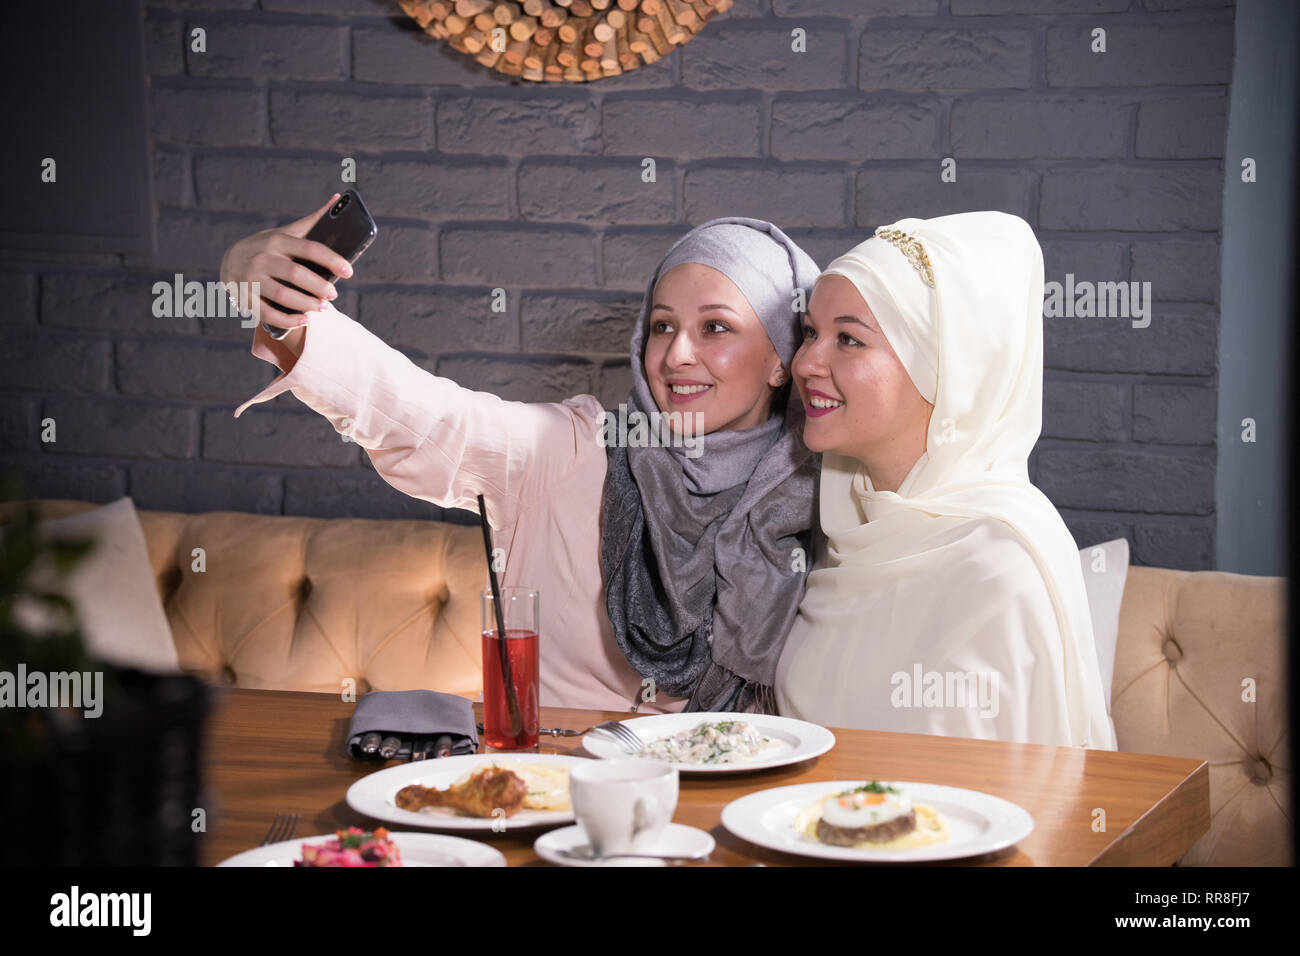 Two Muslim girl take a selfie at a table in a cafe - Stock Image